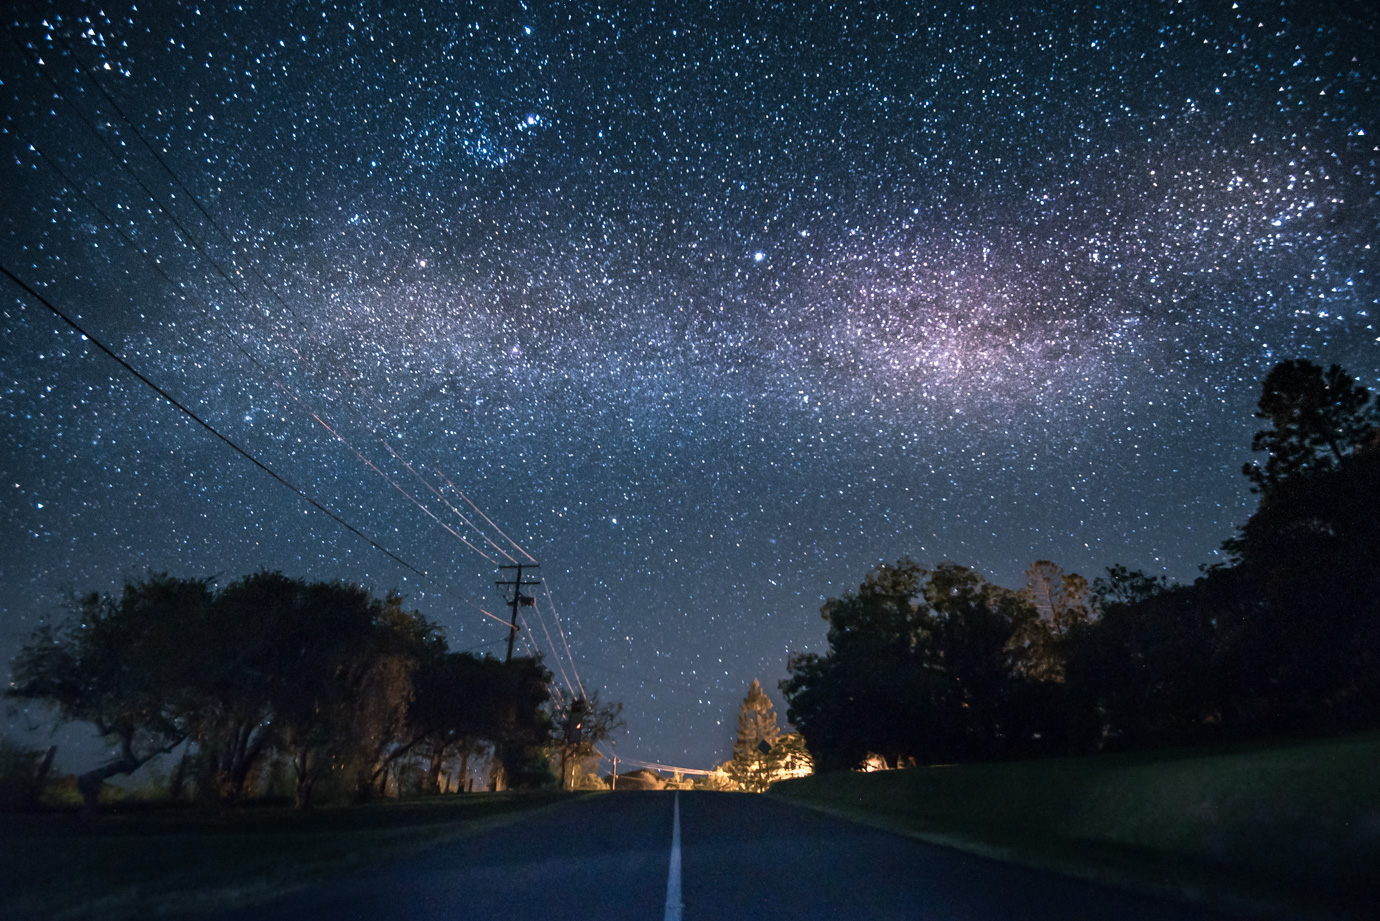 How to shoot the stars photography tutorial